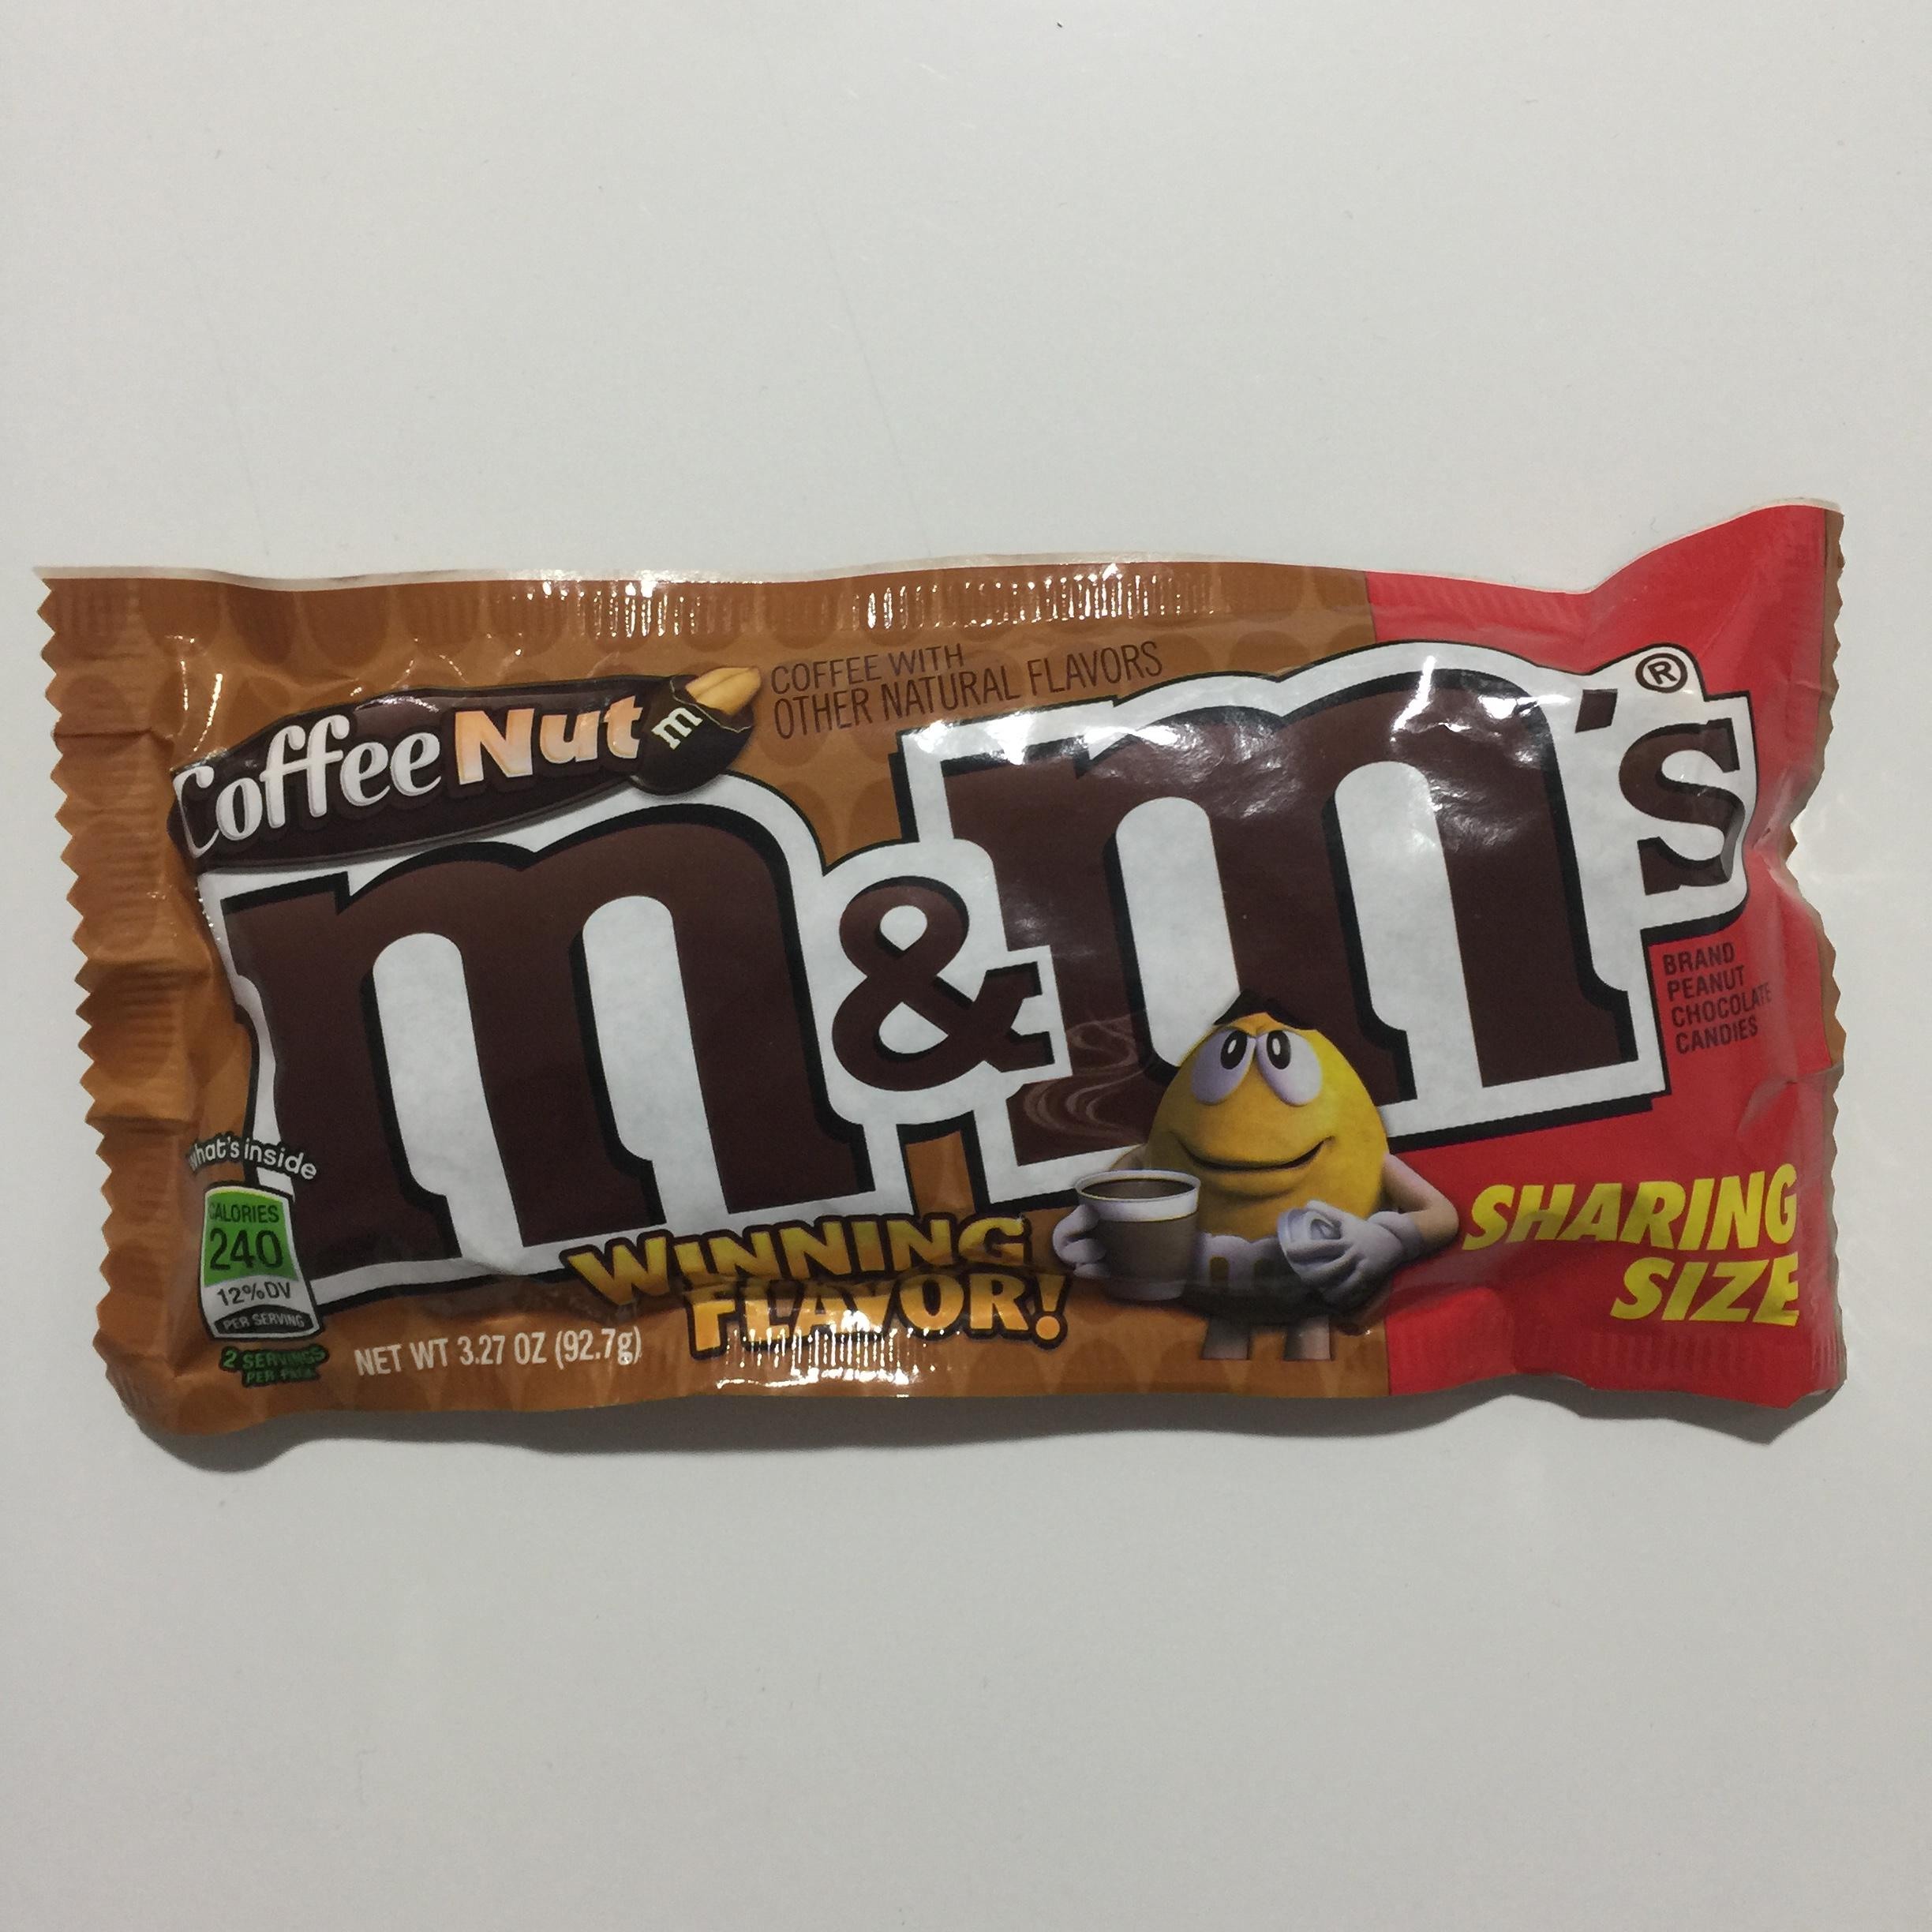 Coffee Nut Mms Sharing Size